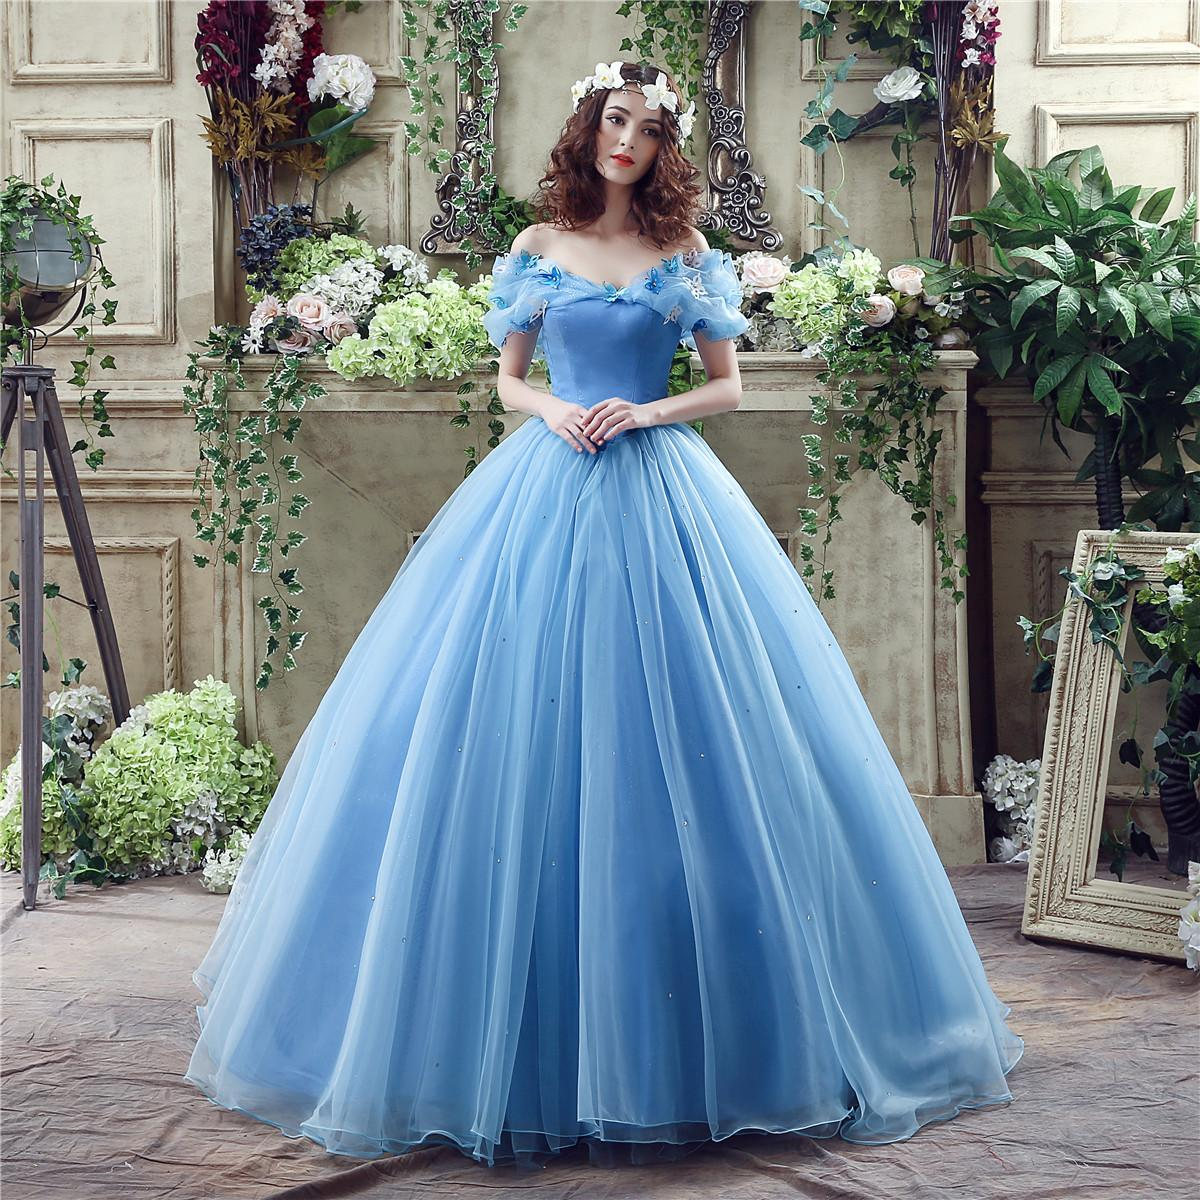 Why you need a Masquerade Gowns - 24 Dressi